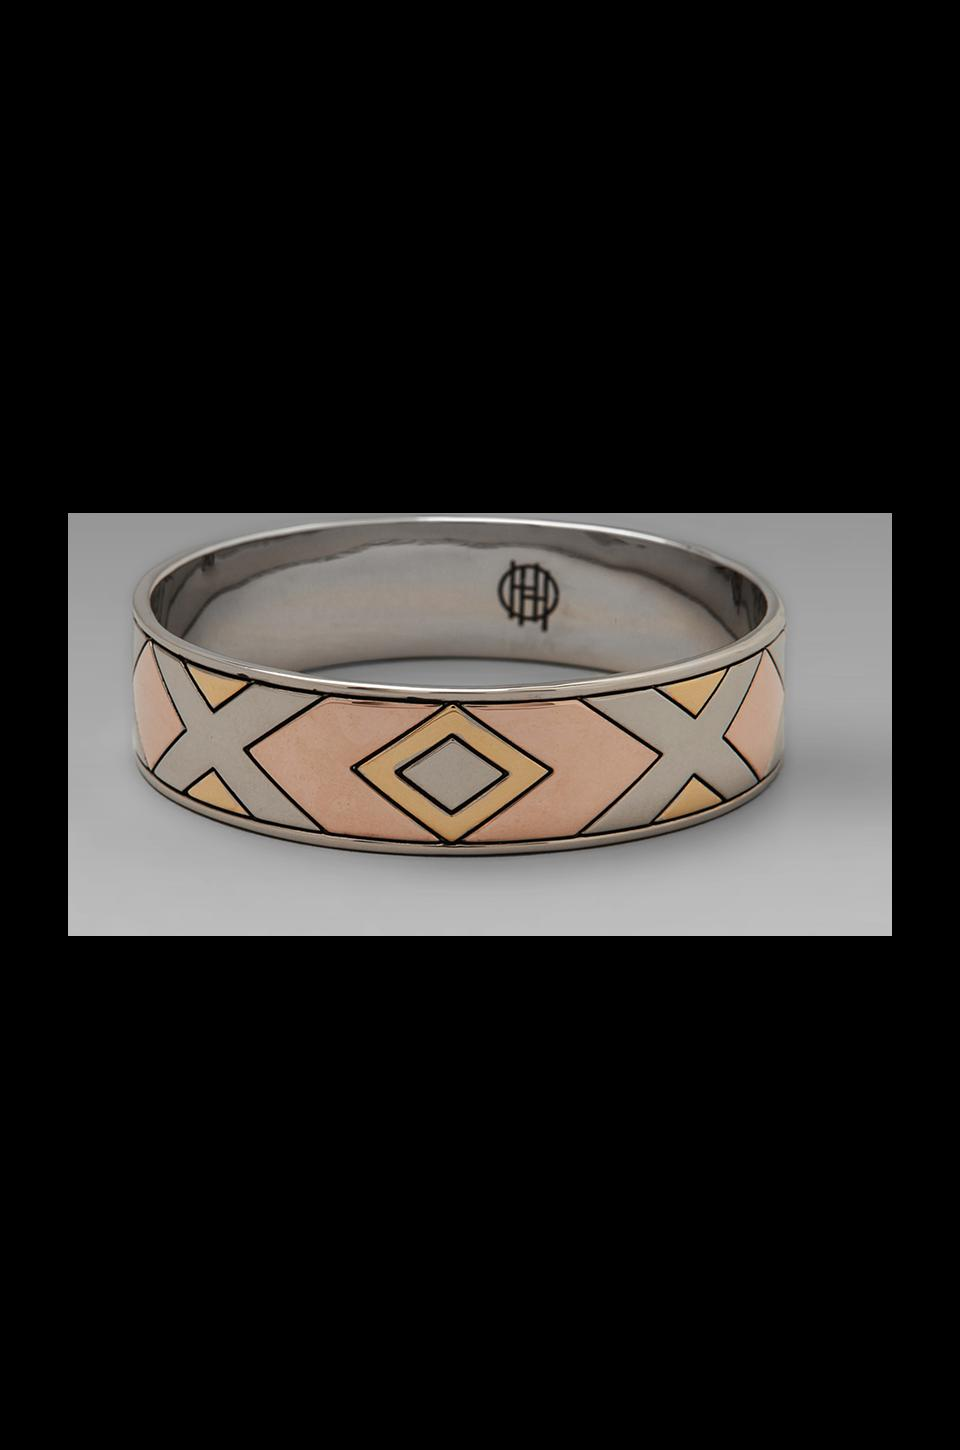 House of Harlow 1960 House of Harlow Sancai Bangle in Tri-tone